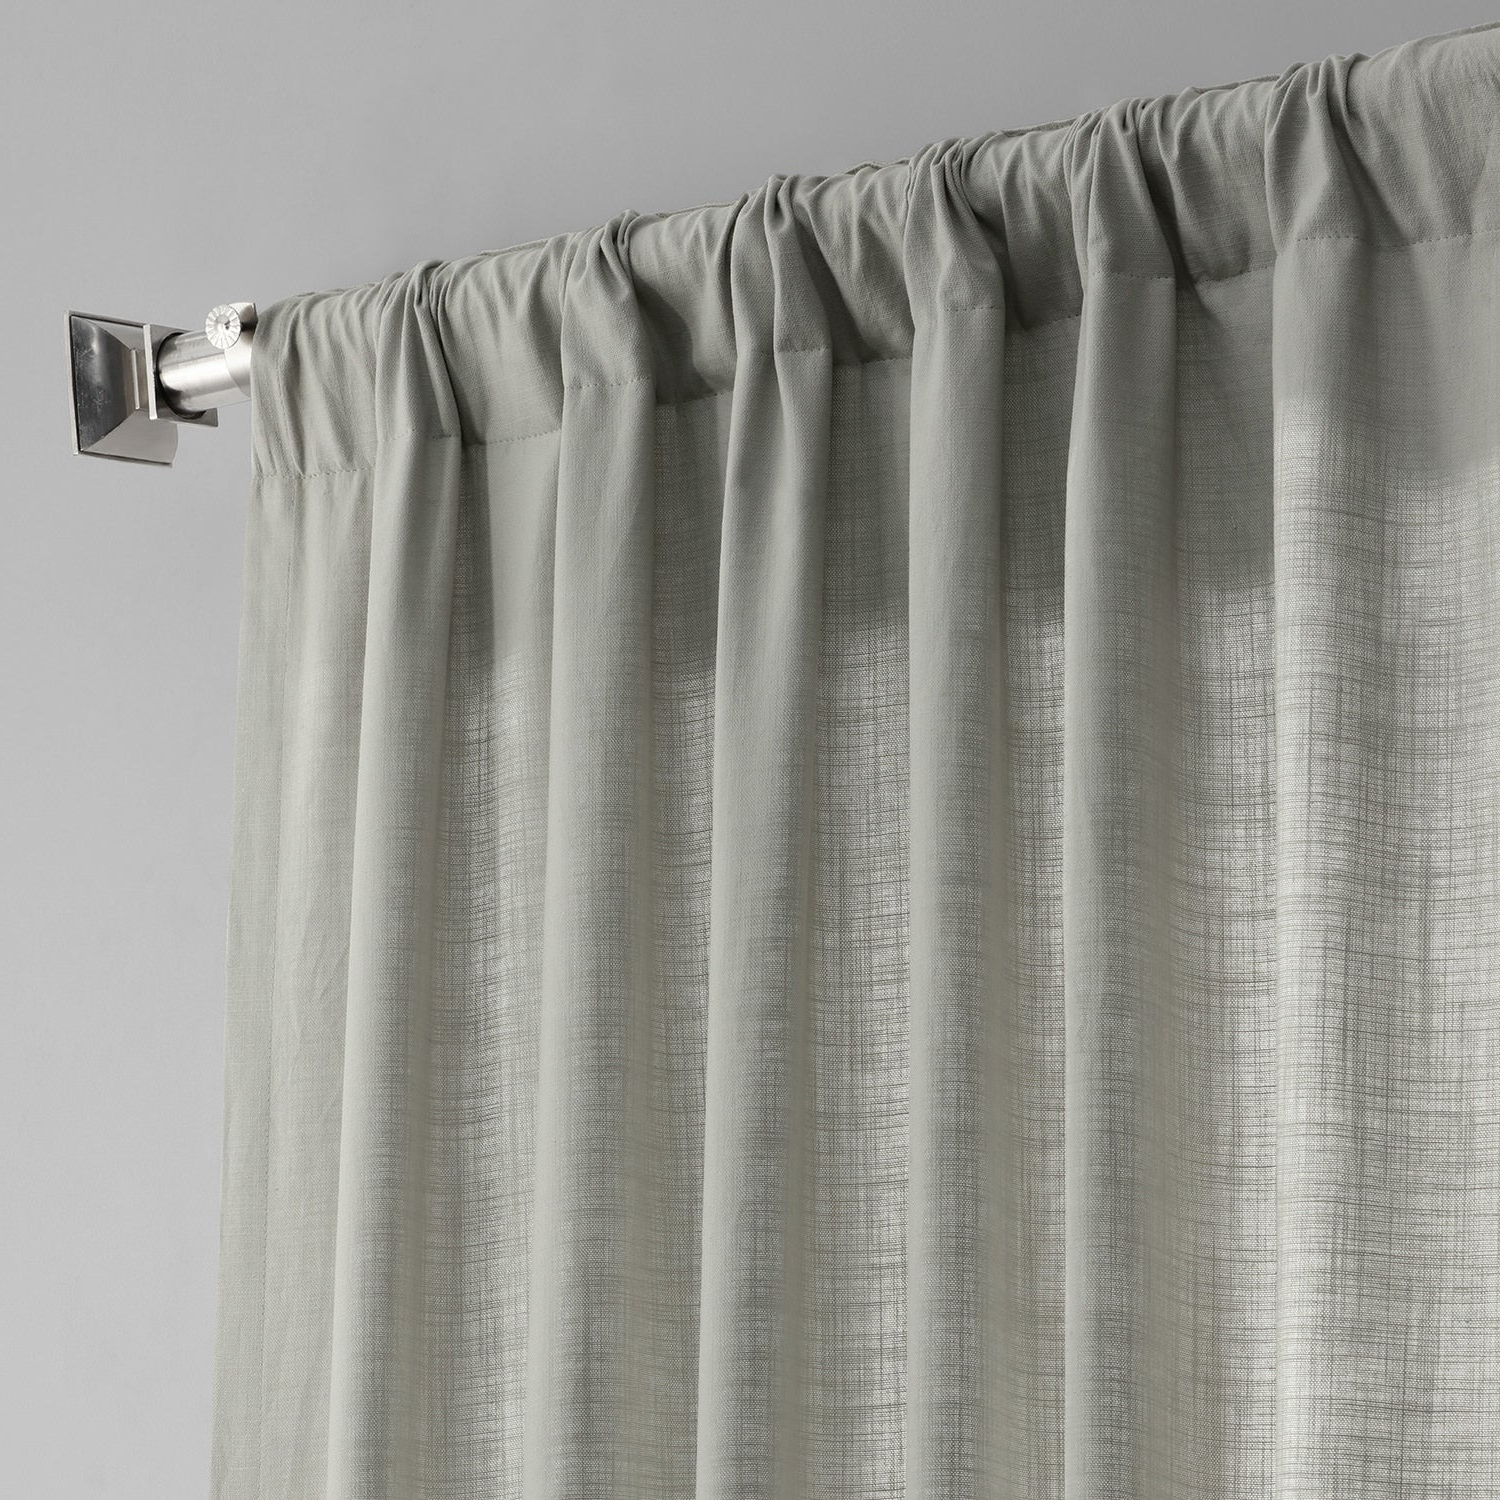 Solid Country Cotton Linen Weave Curtain Panels With Regard To Favorite Exclusive Fabrics Solid Country Cotton Linen Weave Curtain Panel (View 17 of 20)